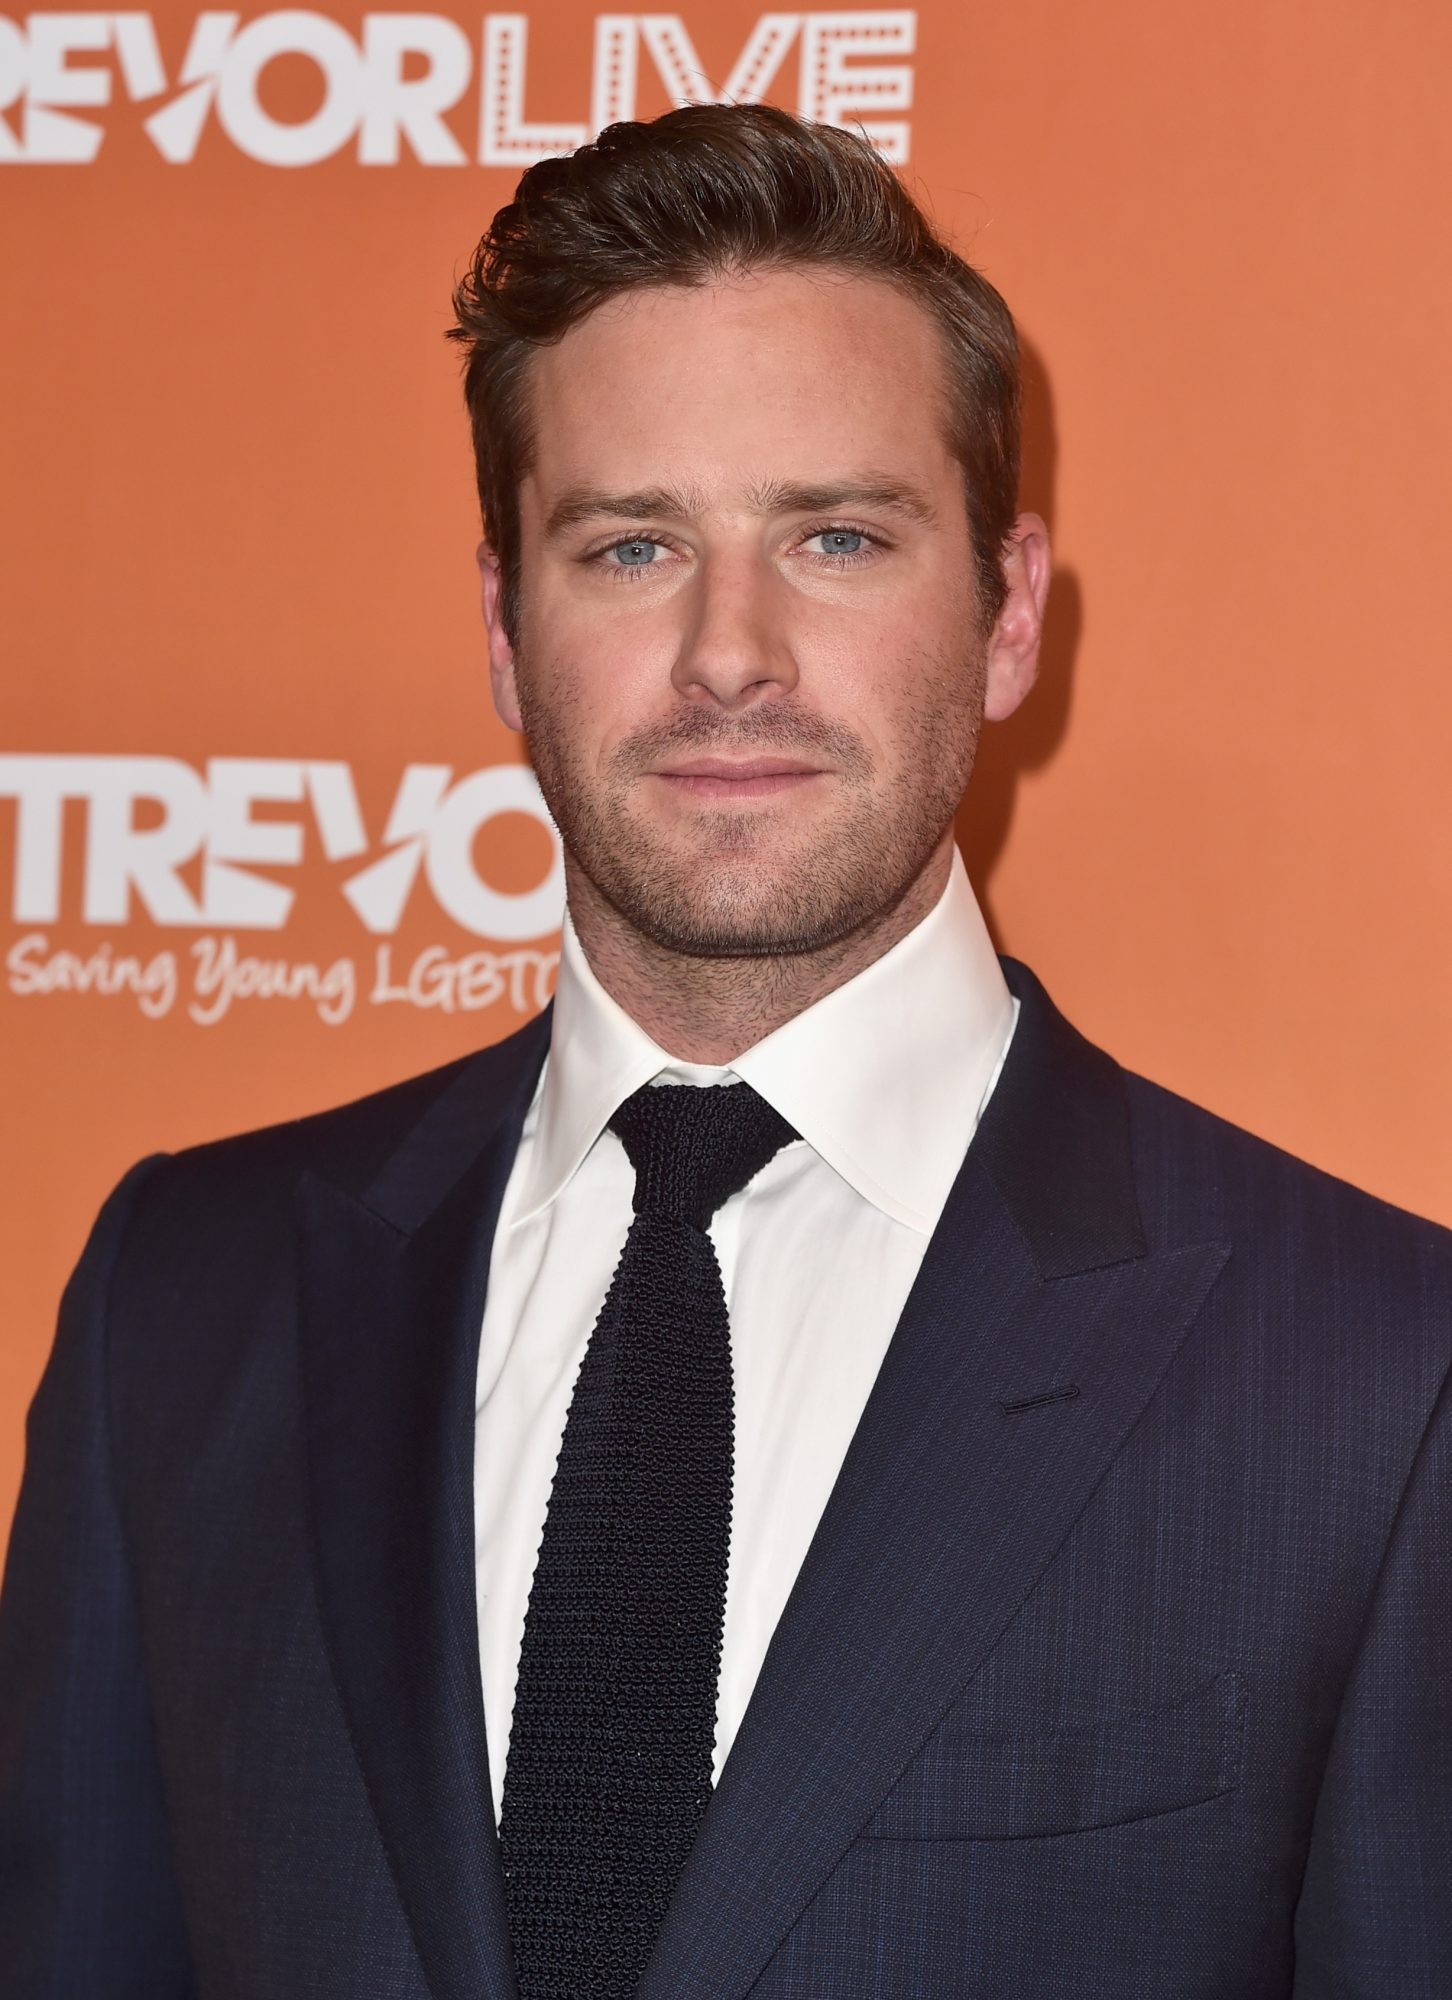 Armie Hammer's 'Oscar Prep' Includes an IV After He Misses Spirit Awards Due to Illness